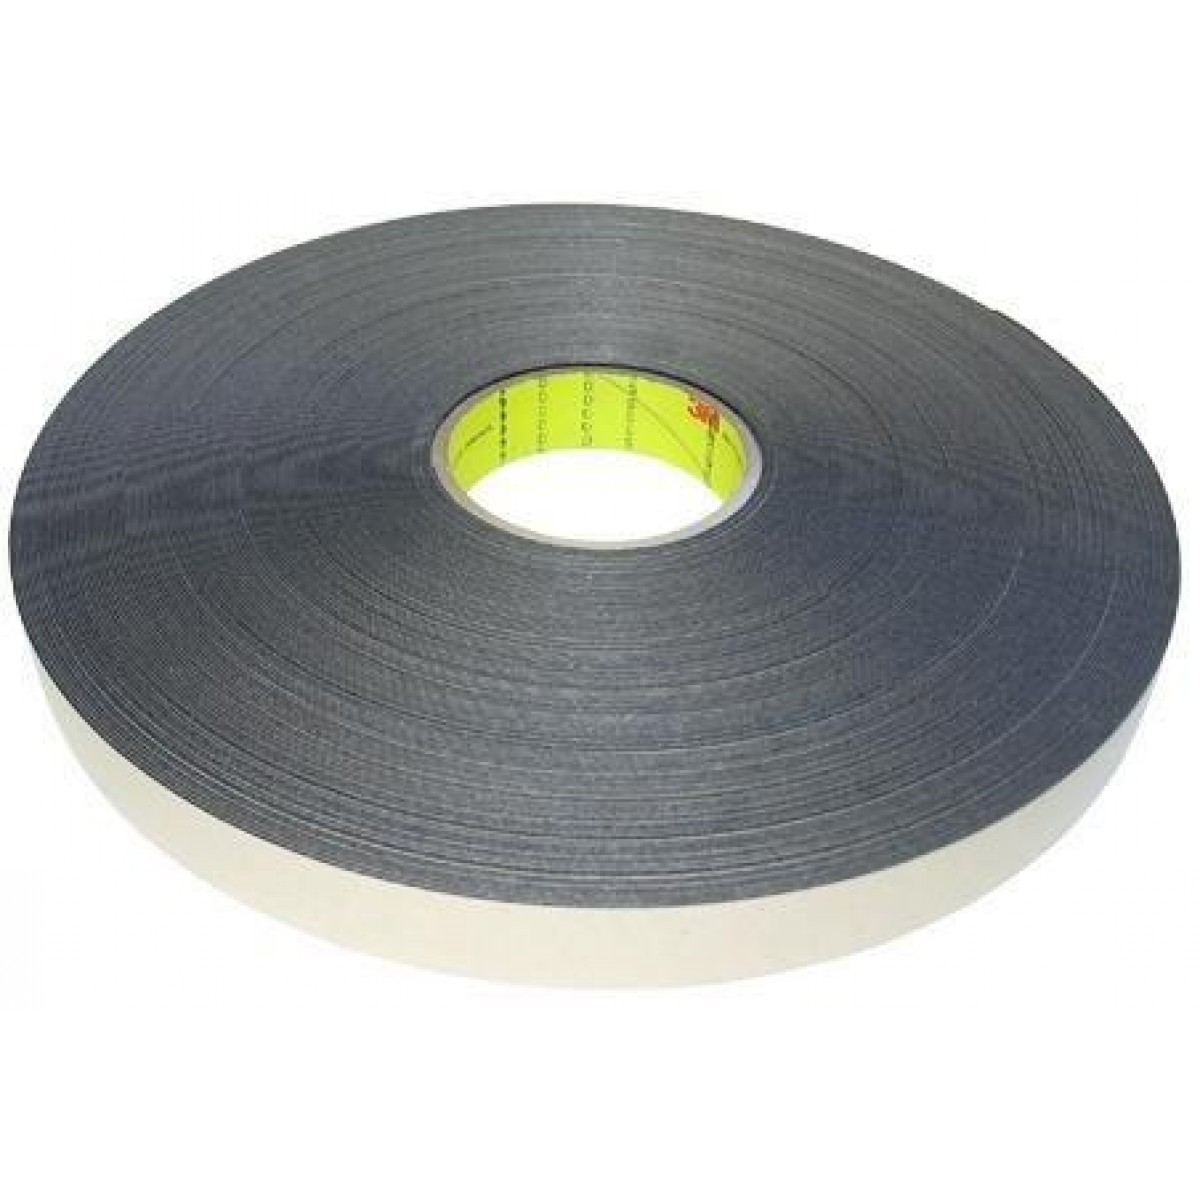 3m Double Sided Tape 3m Tape 3m Products